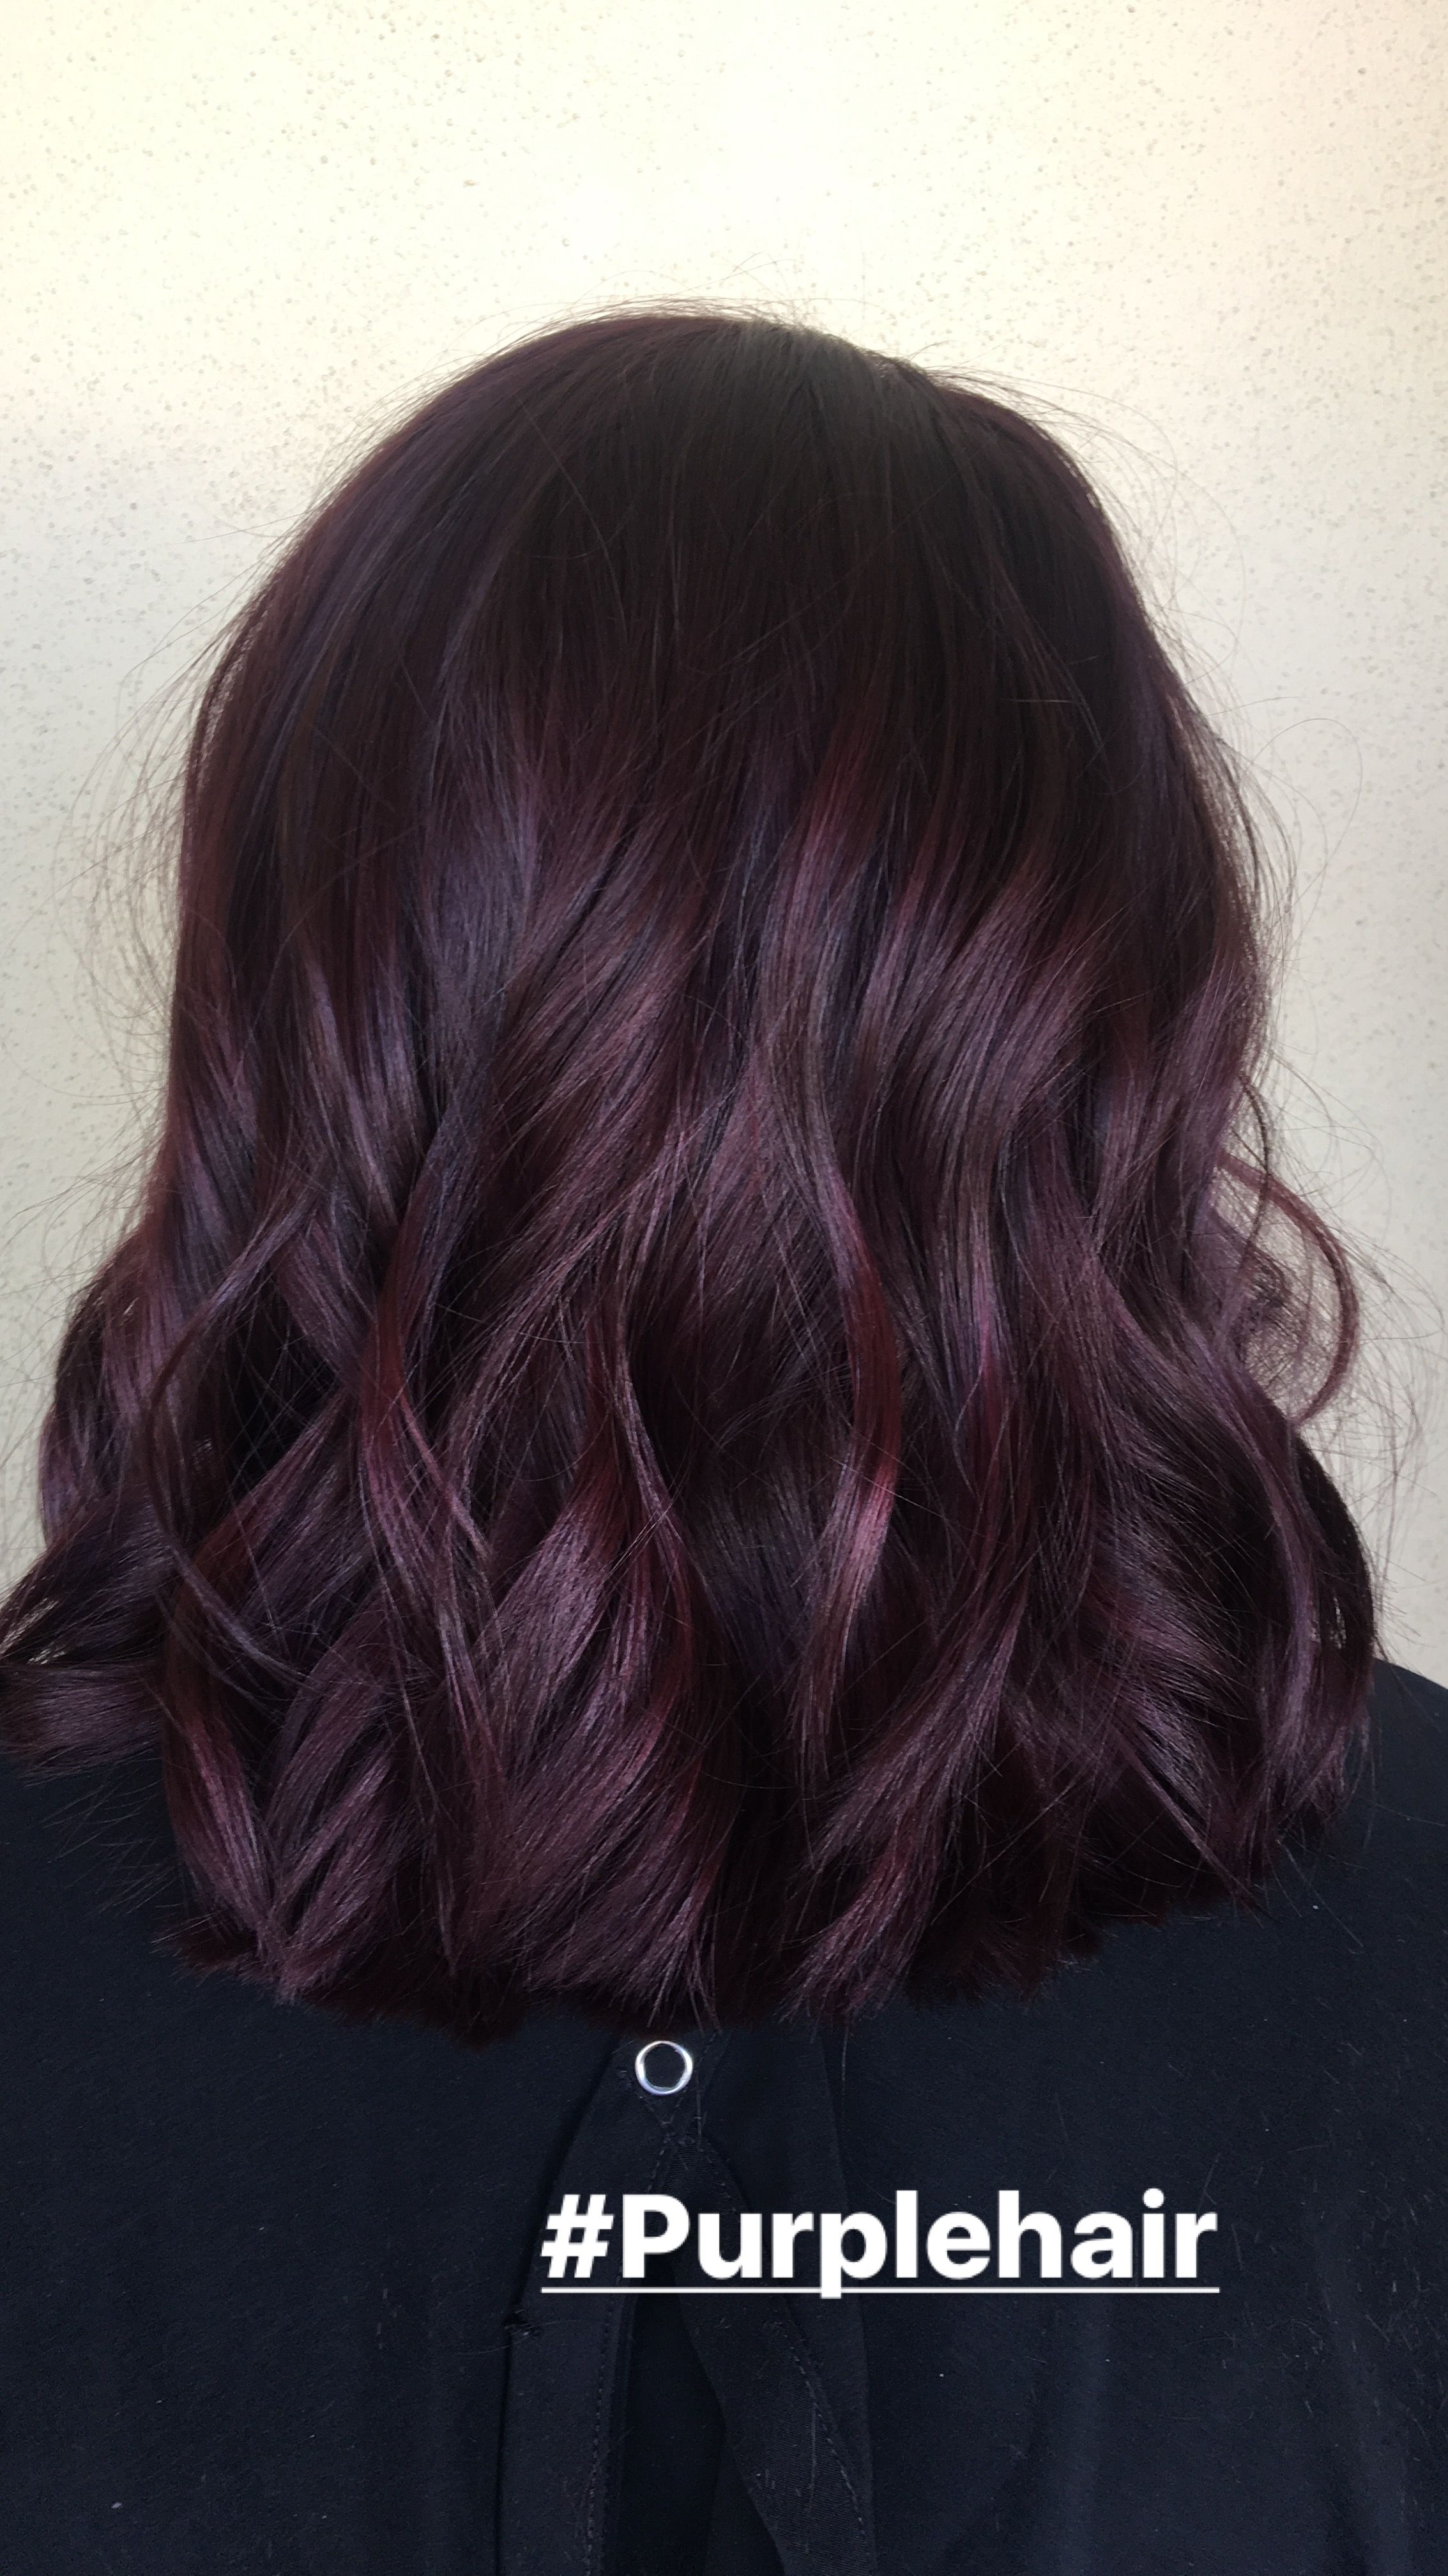 Perfect Dark Purple Hair Color Done By Alexaa3 At Habitsalon